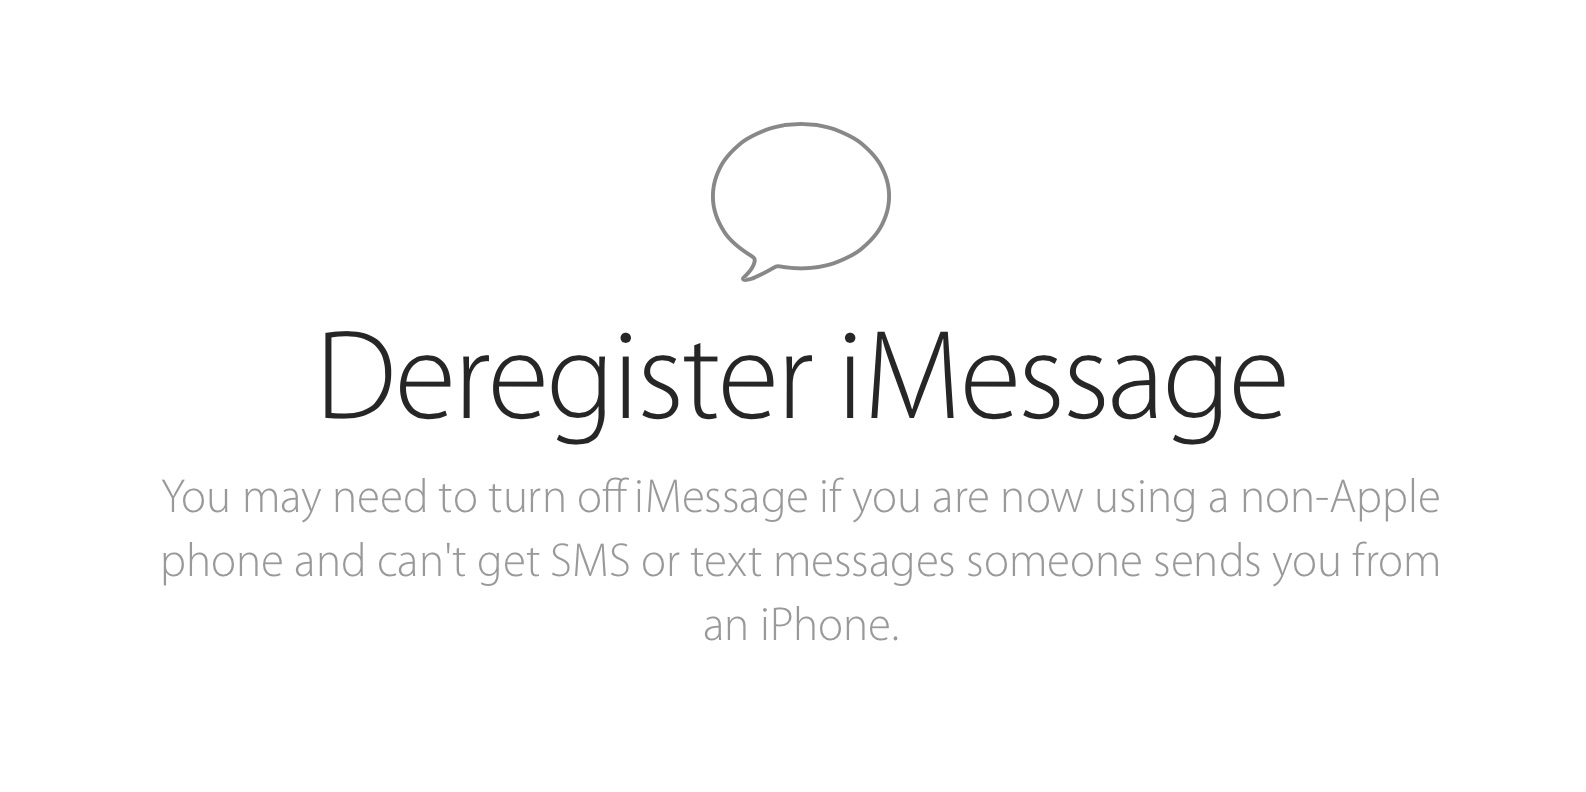 Deregister_and_Turn_Off_iMessage_-_Apple_Support.jpg